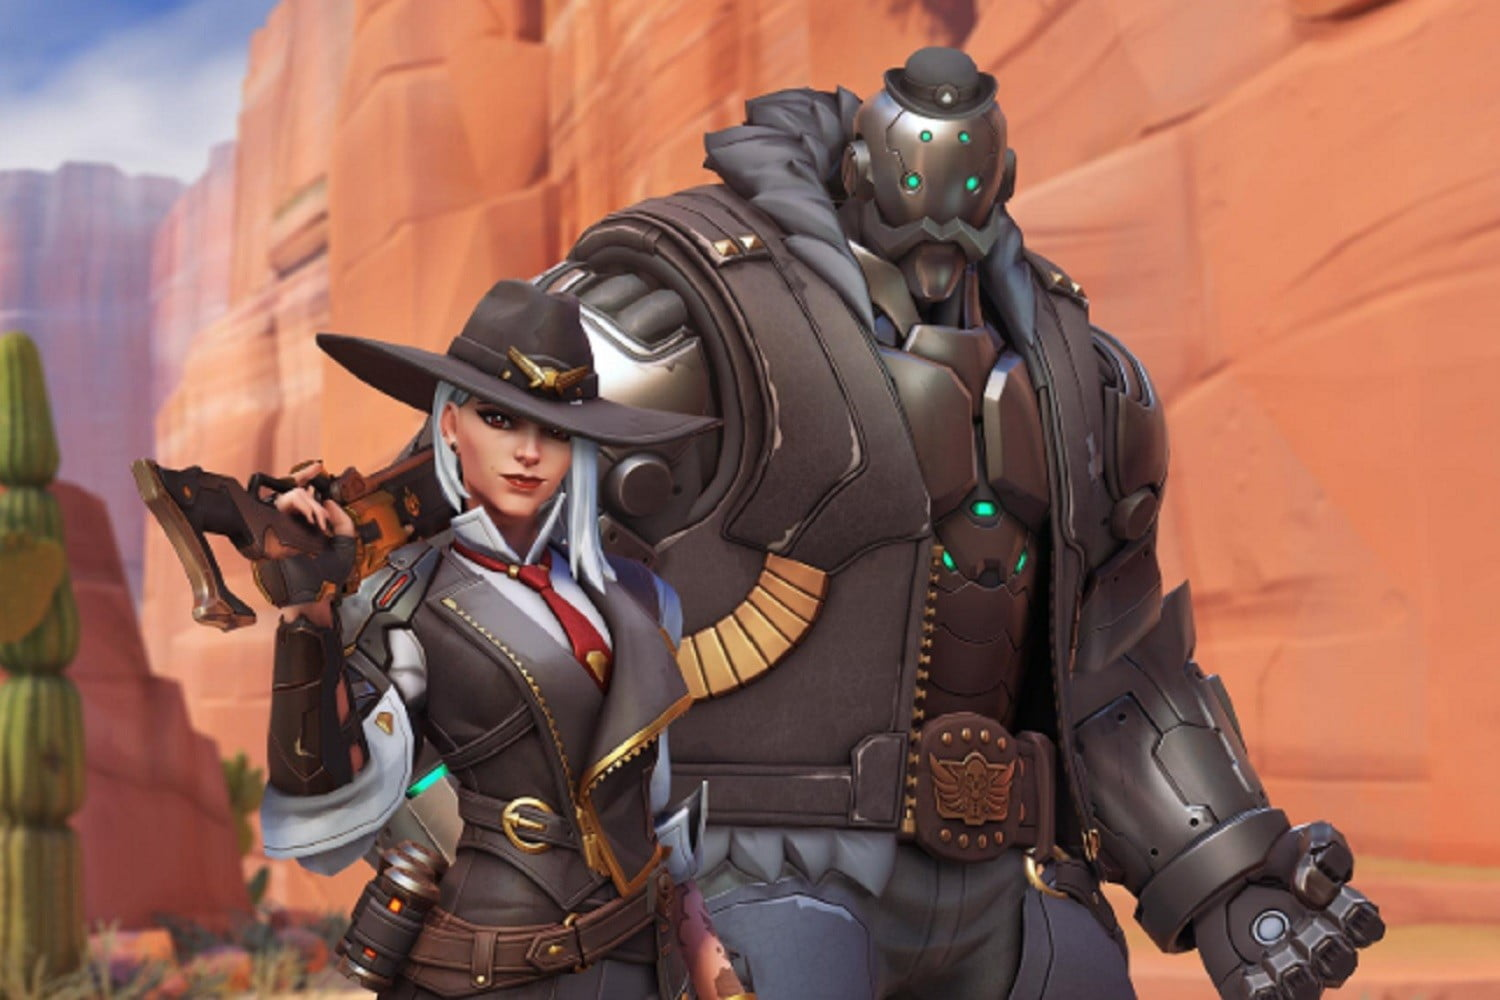 The Next Major Overwatch Patch Will Require a Full Reinstall